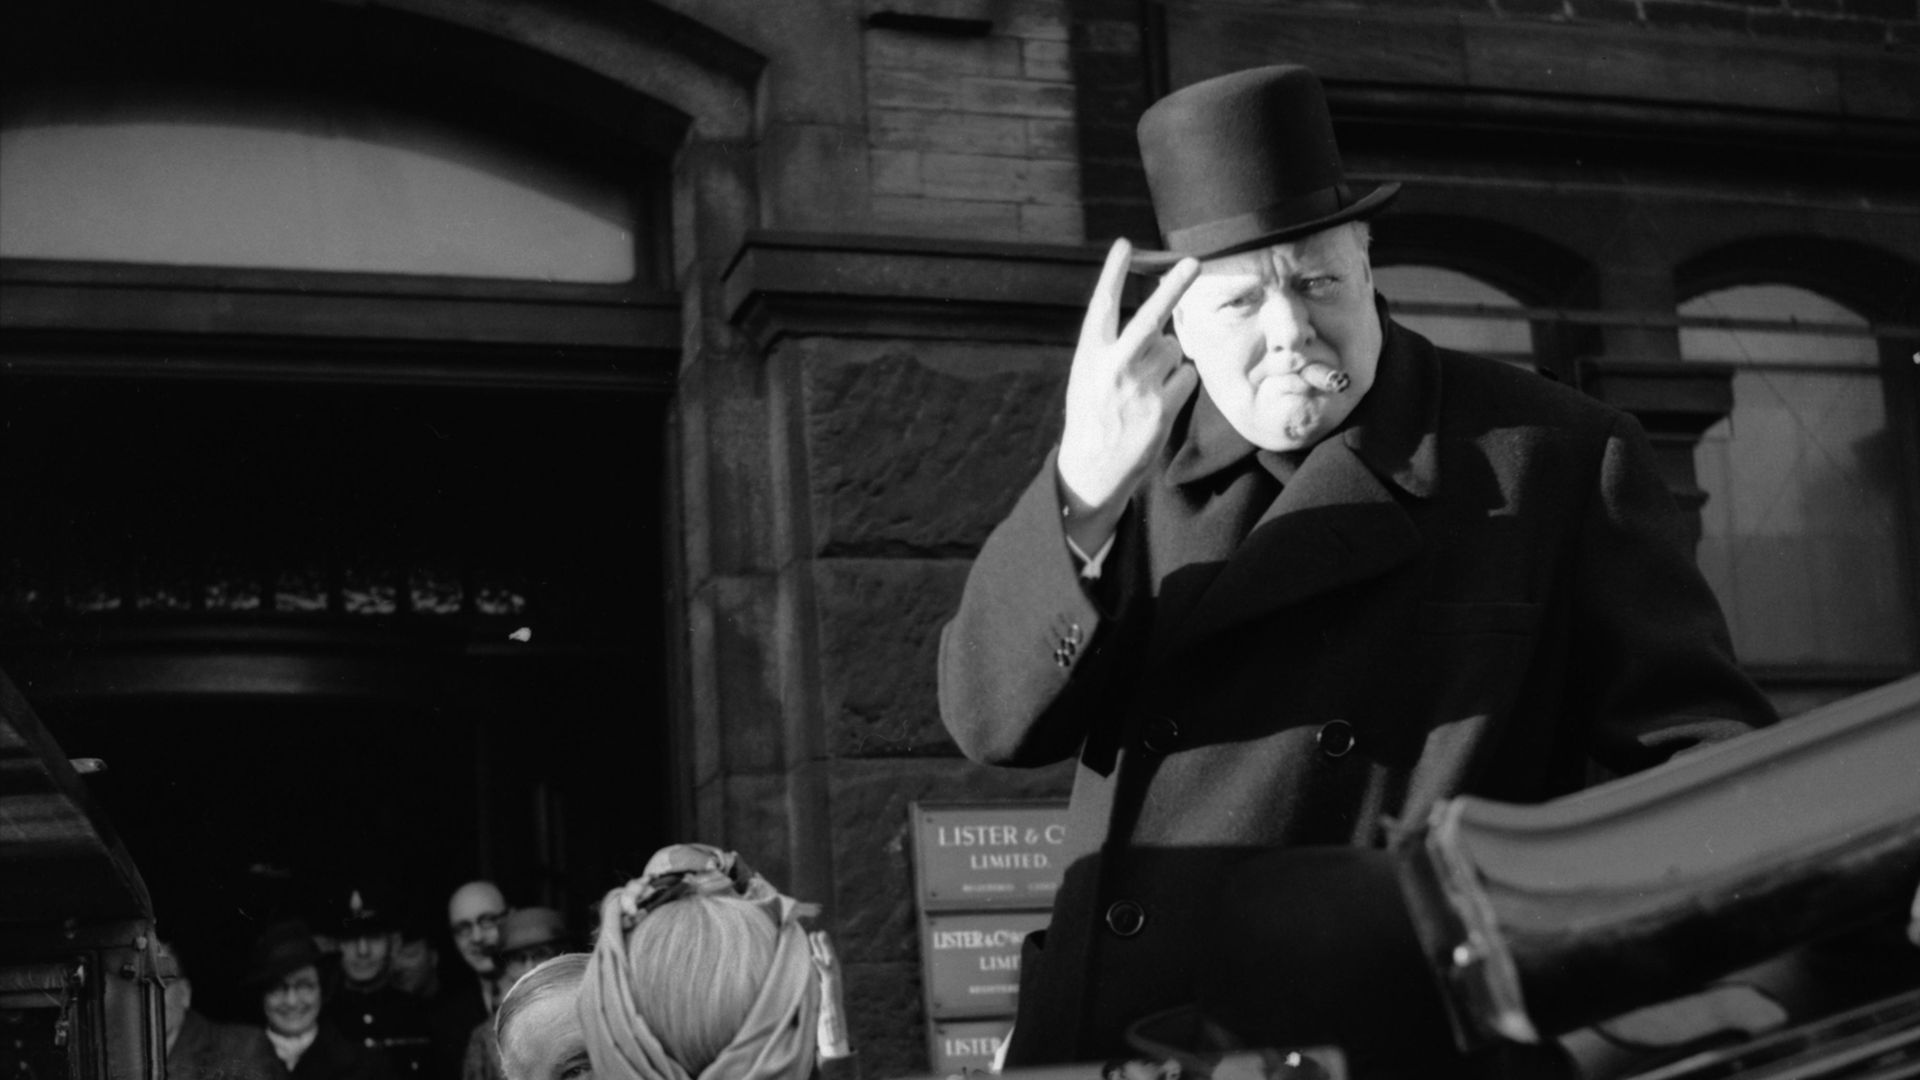 Winston Churchill gives his famous 'V' sign during a visit to Bradford in December 1942 - Credit: Imperial War Museums via Getty I